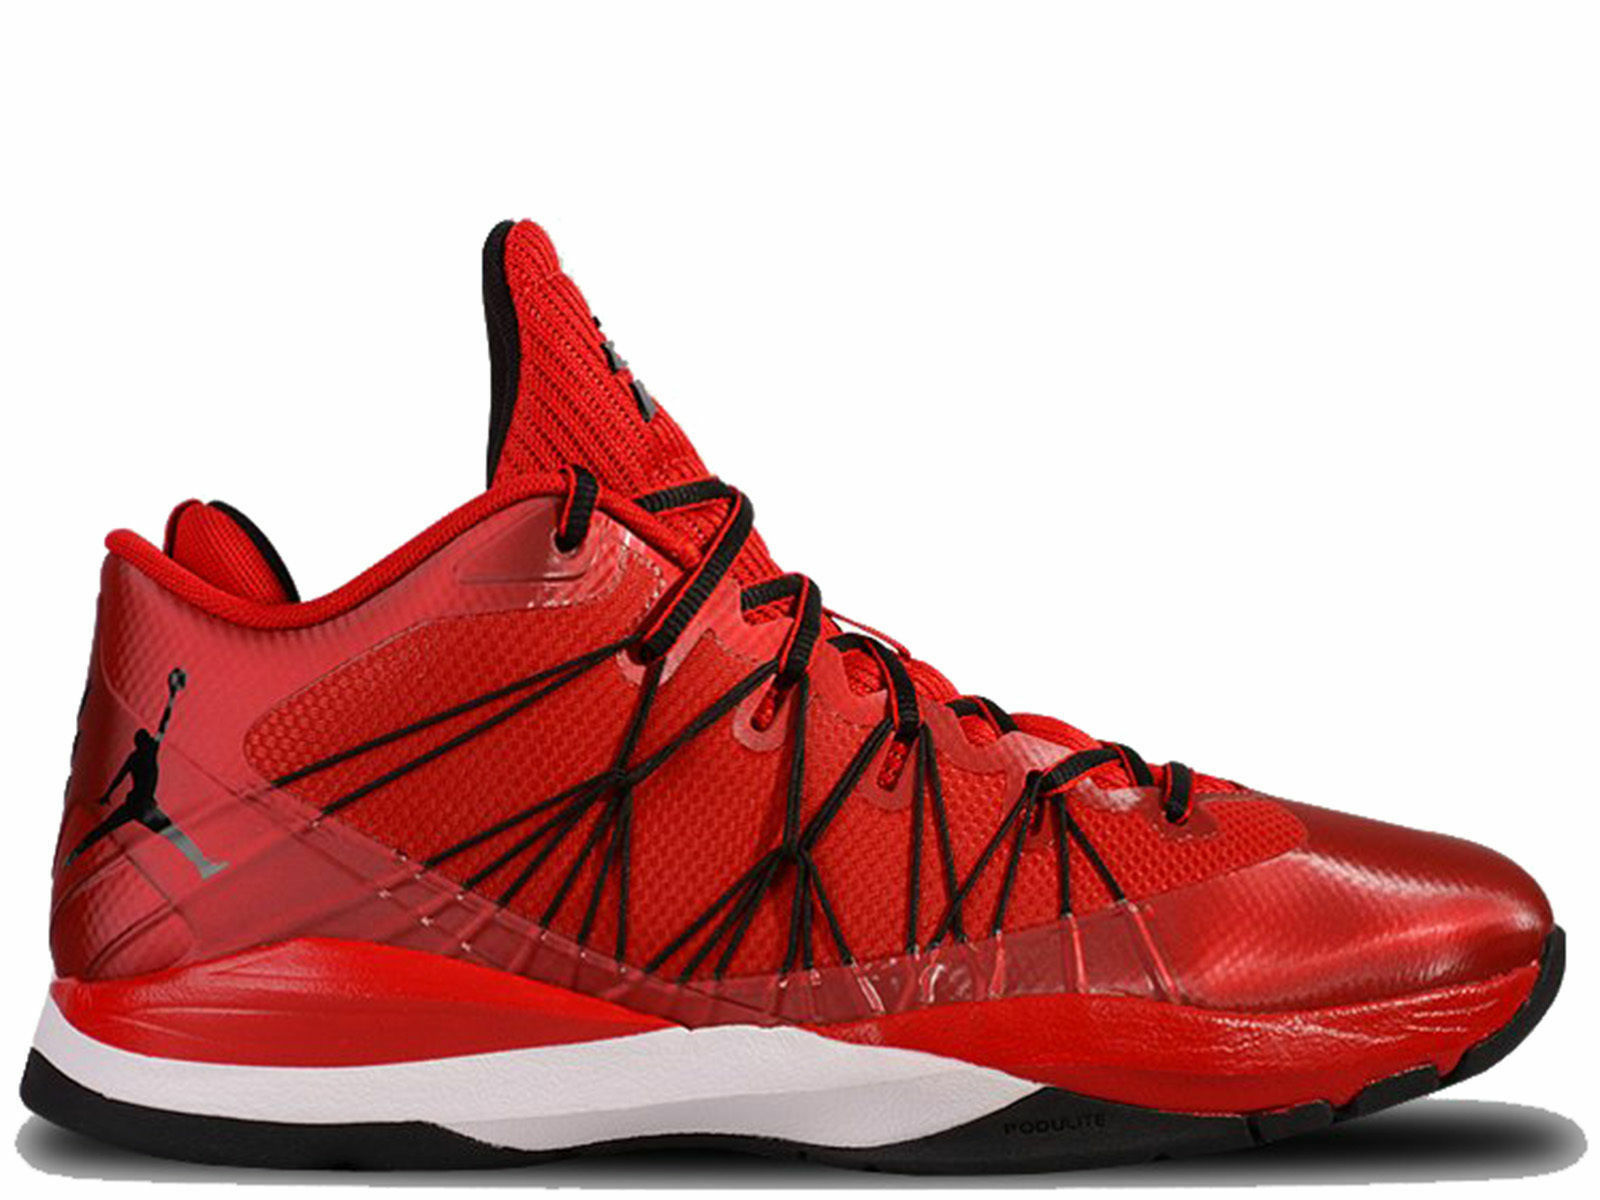 buy online 5c196 3e7e1 NEW Nike AIR JORDAN CP3 VII AE MEN S BASKETBALL SHOES SHOES SHOES GYM RED  644805 601